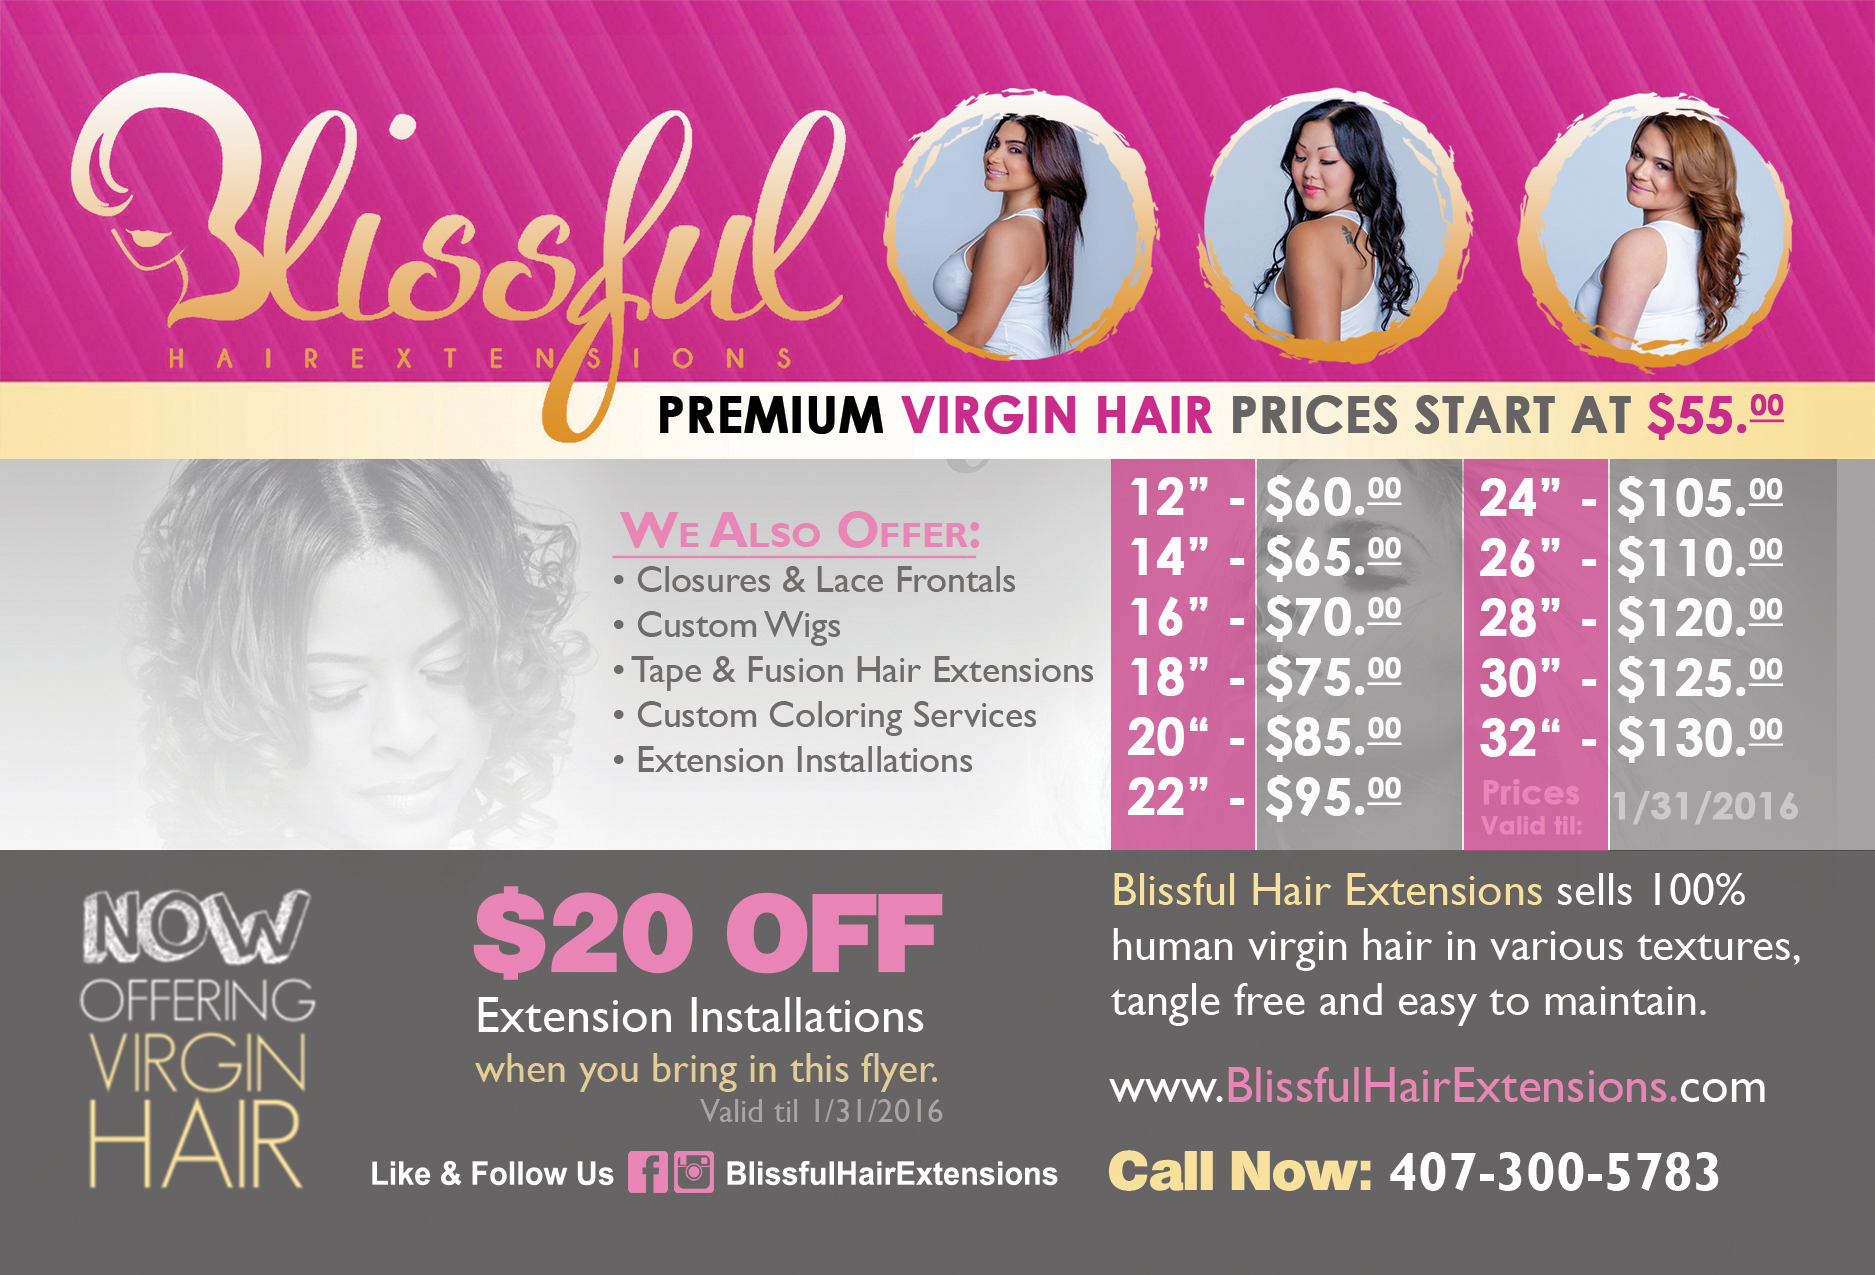 Blissful Hair Extensions Asb Marketing Solutions